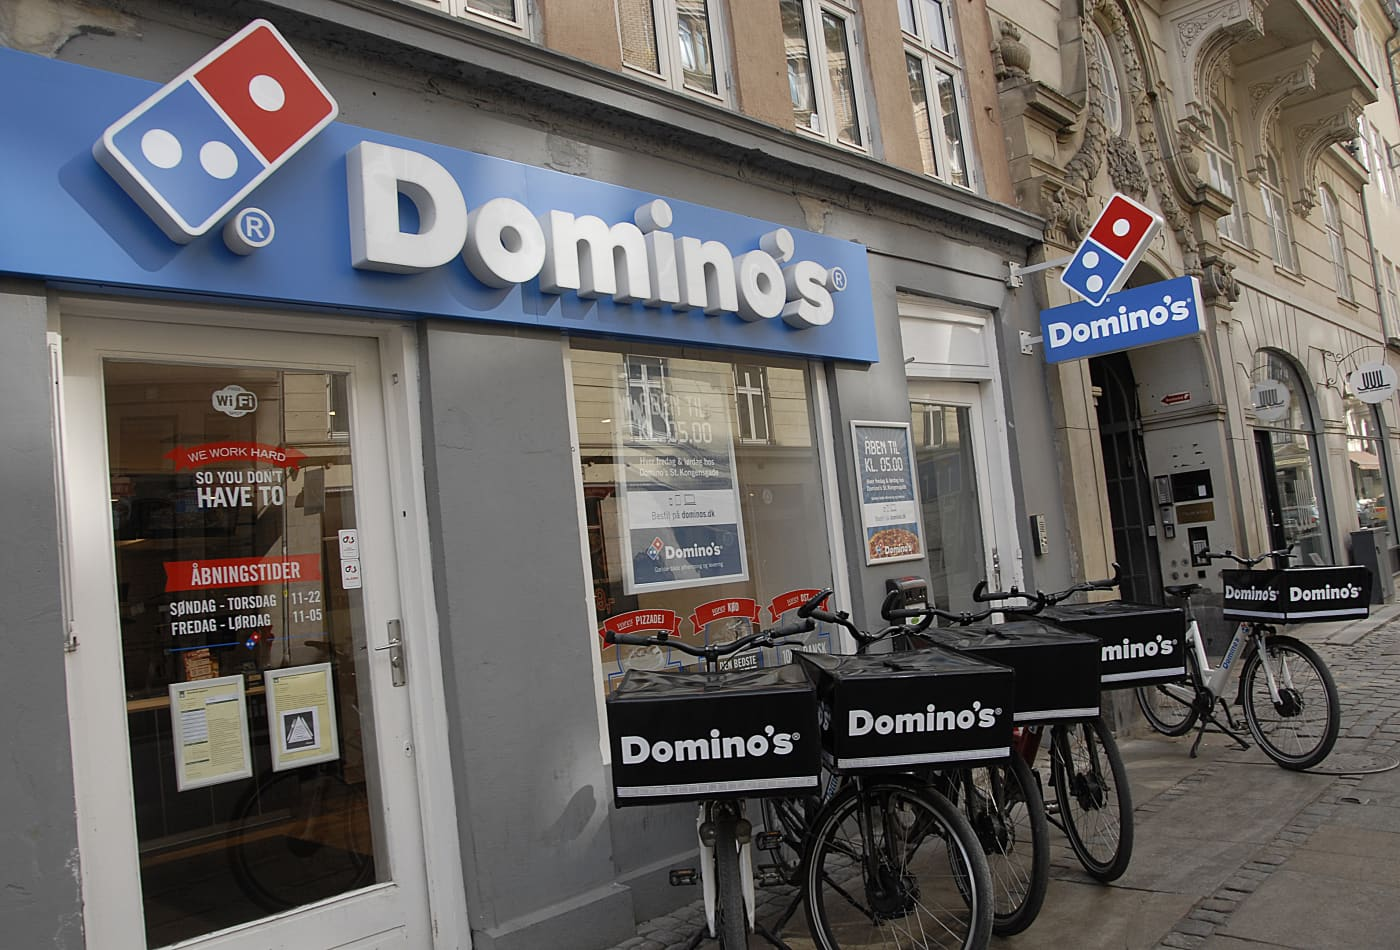 What happened to Domino's in Iceland, Sweden and Norway